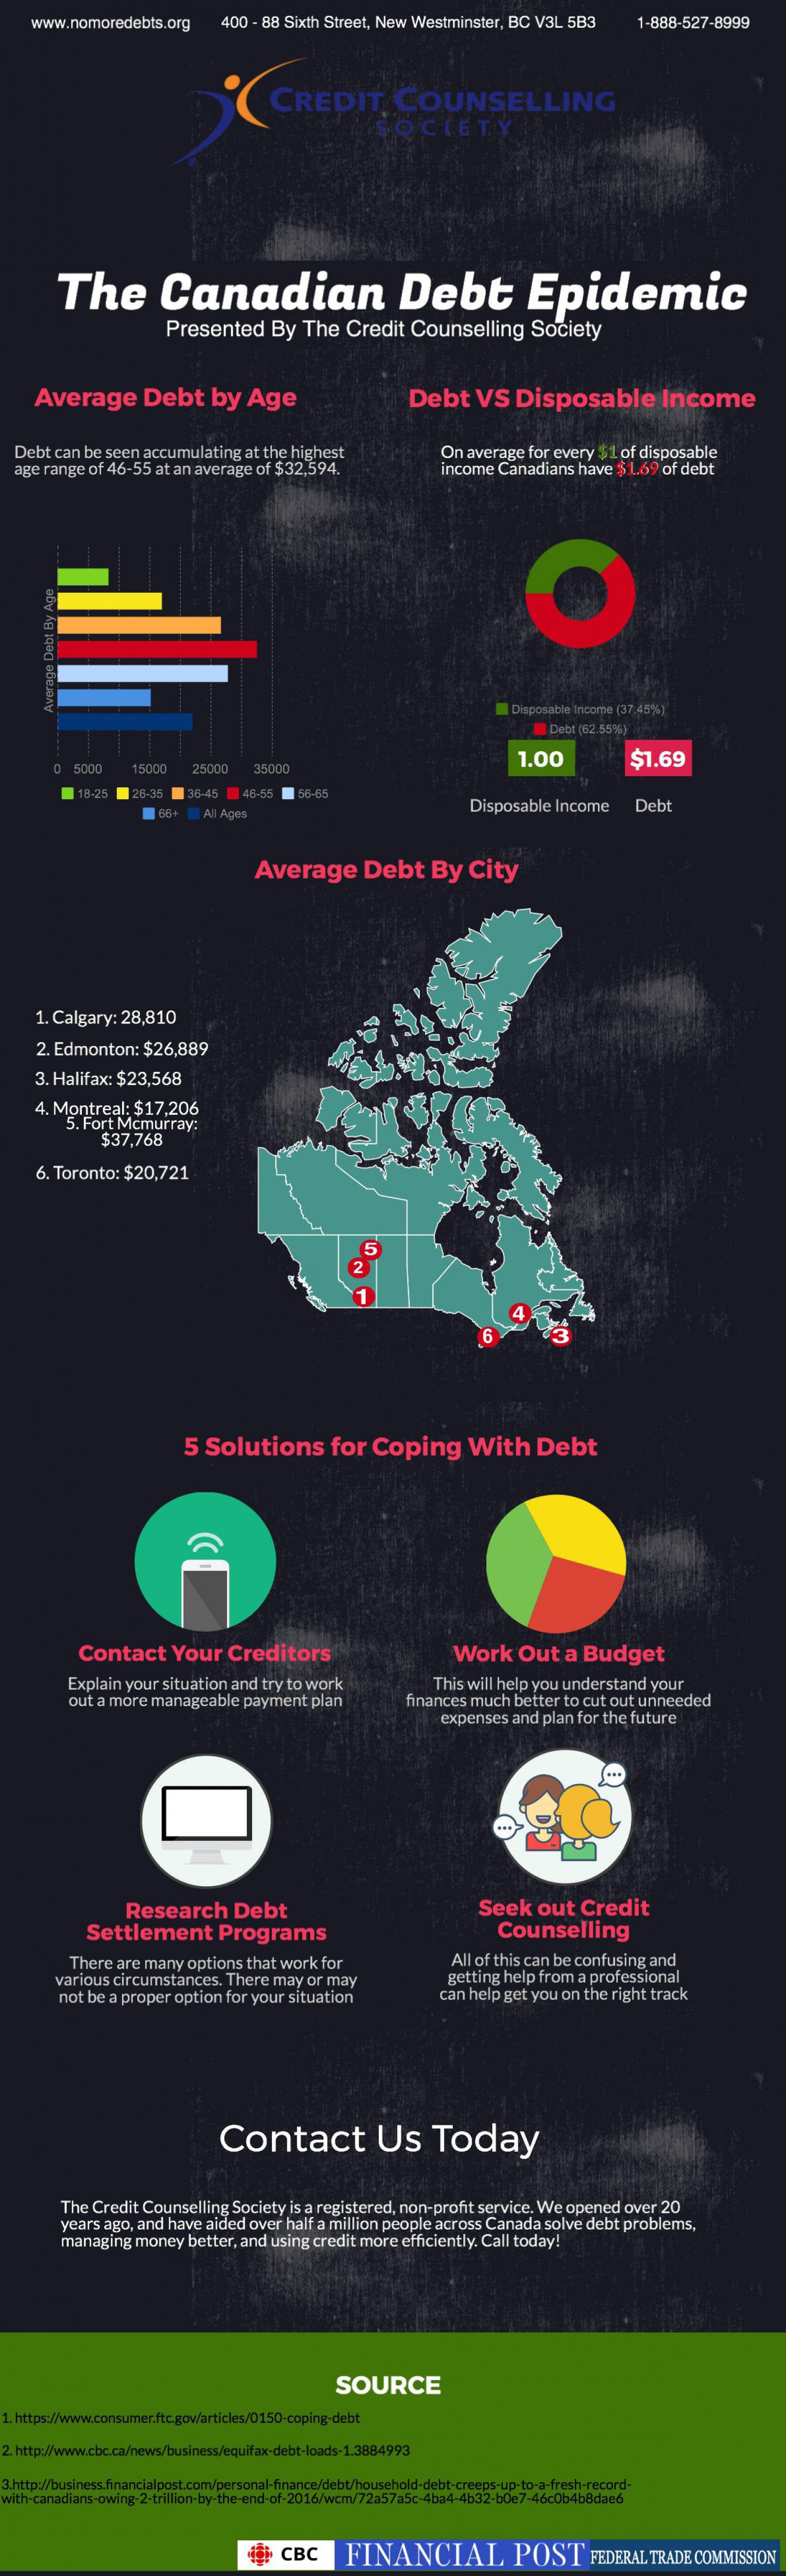 The Canadian Debt Epidemic Infographic